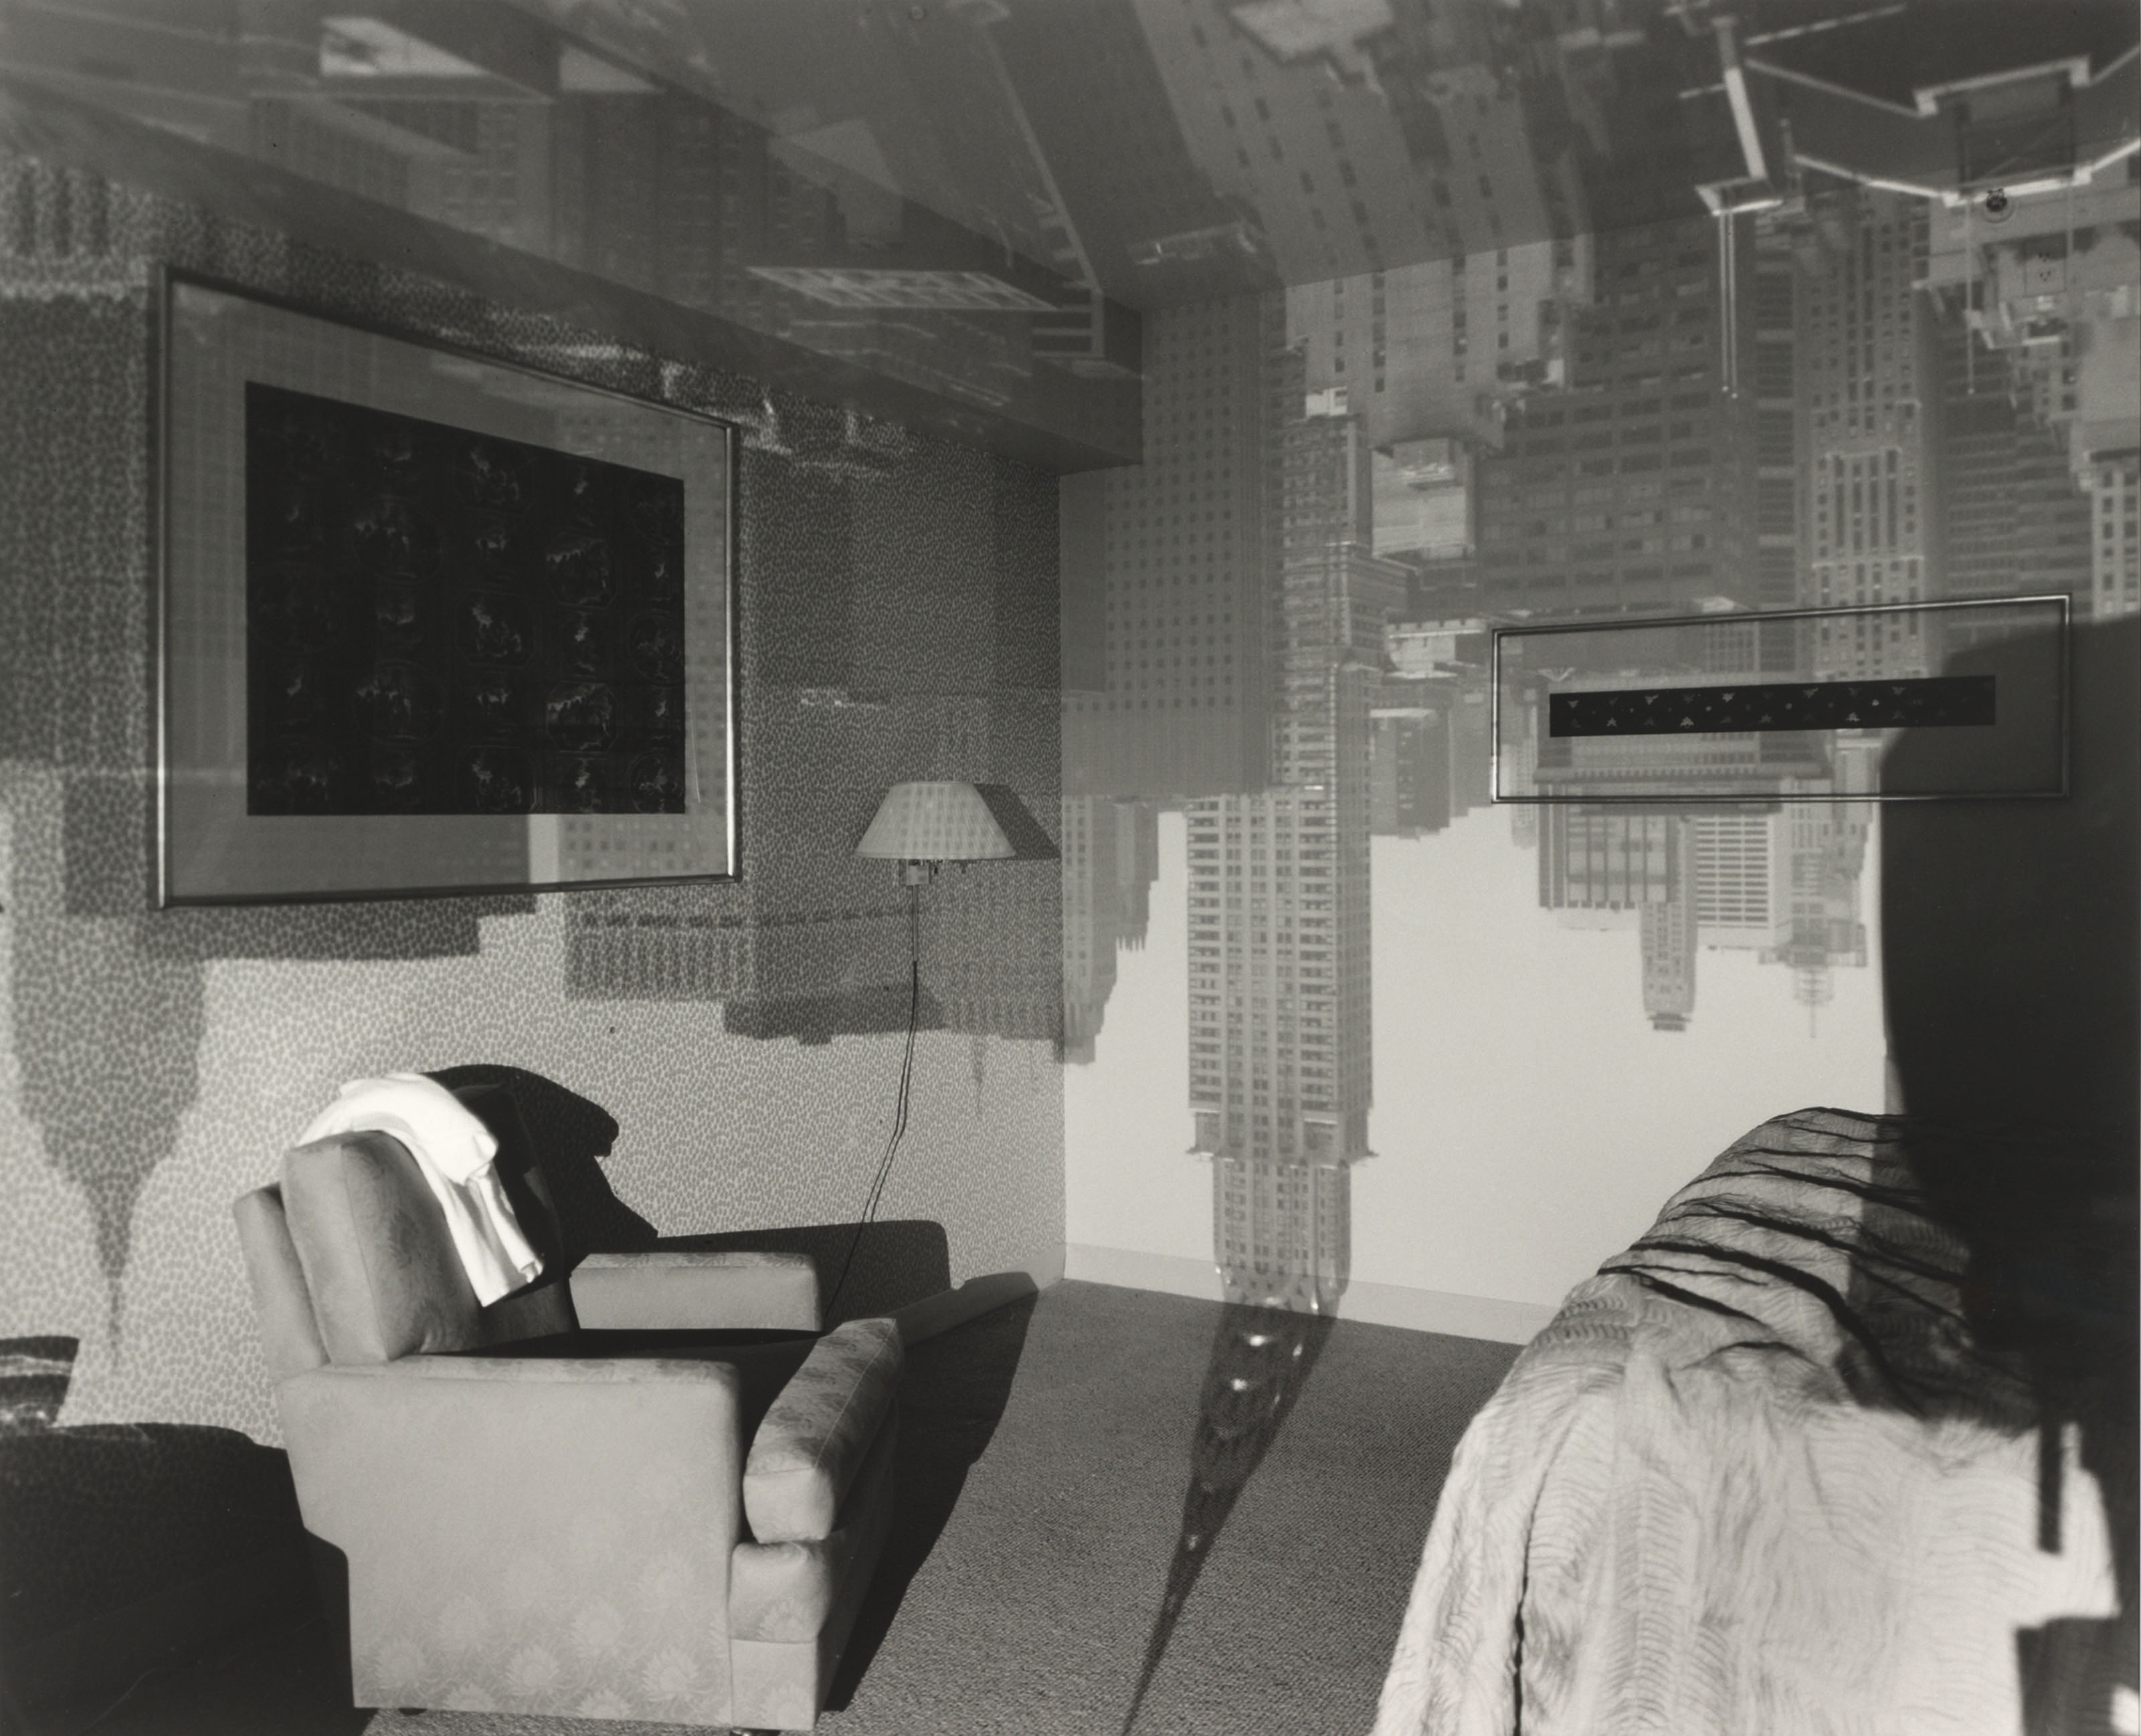 Camera Obscura Image of Chrysler Building in Hotel Room, 1999